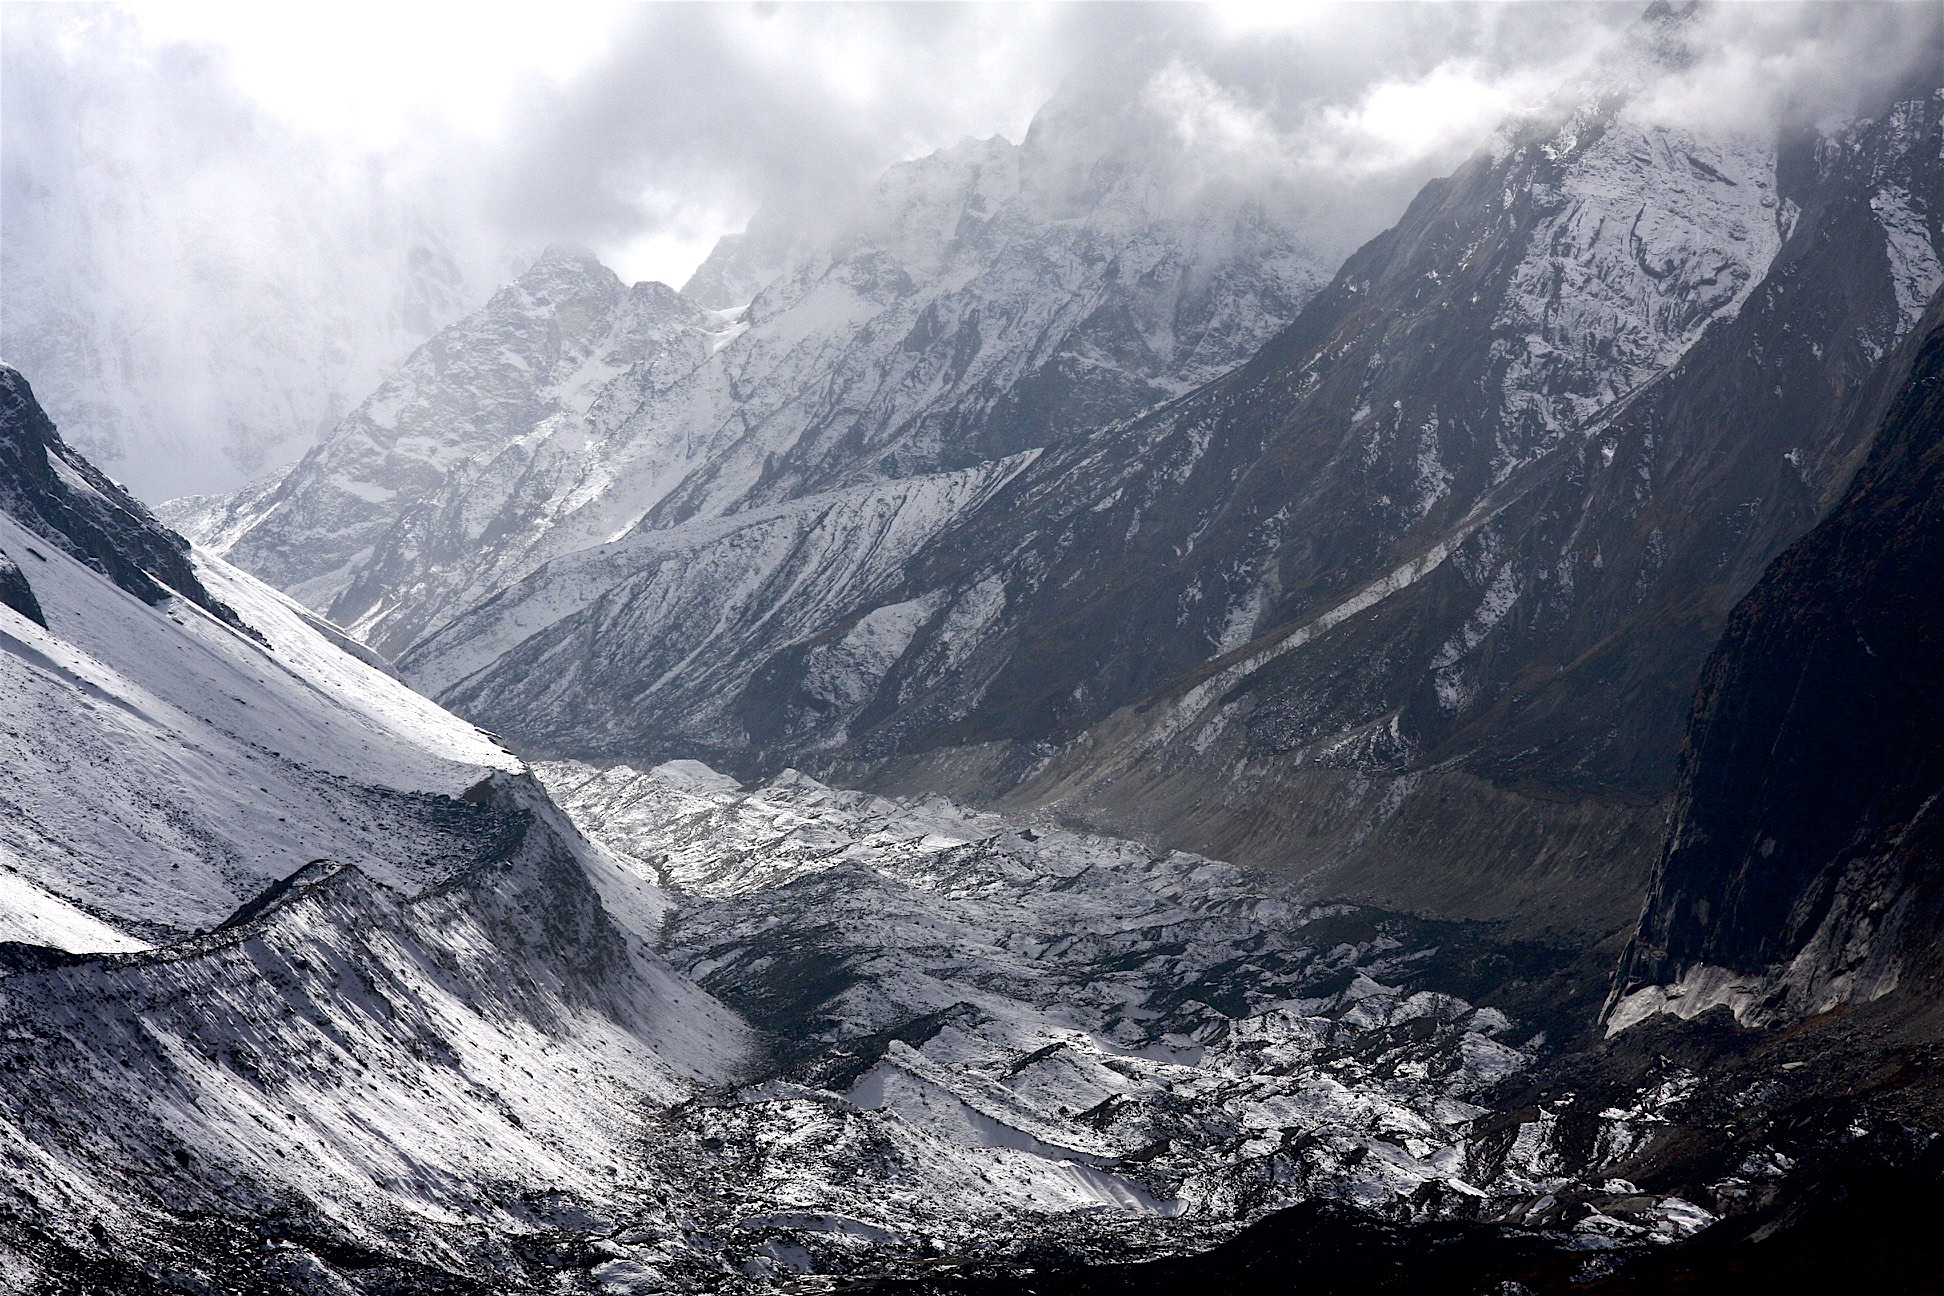 Syanche Glacier and north side of Manaslu.